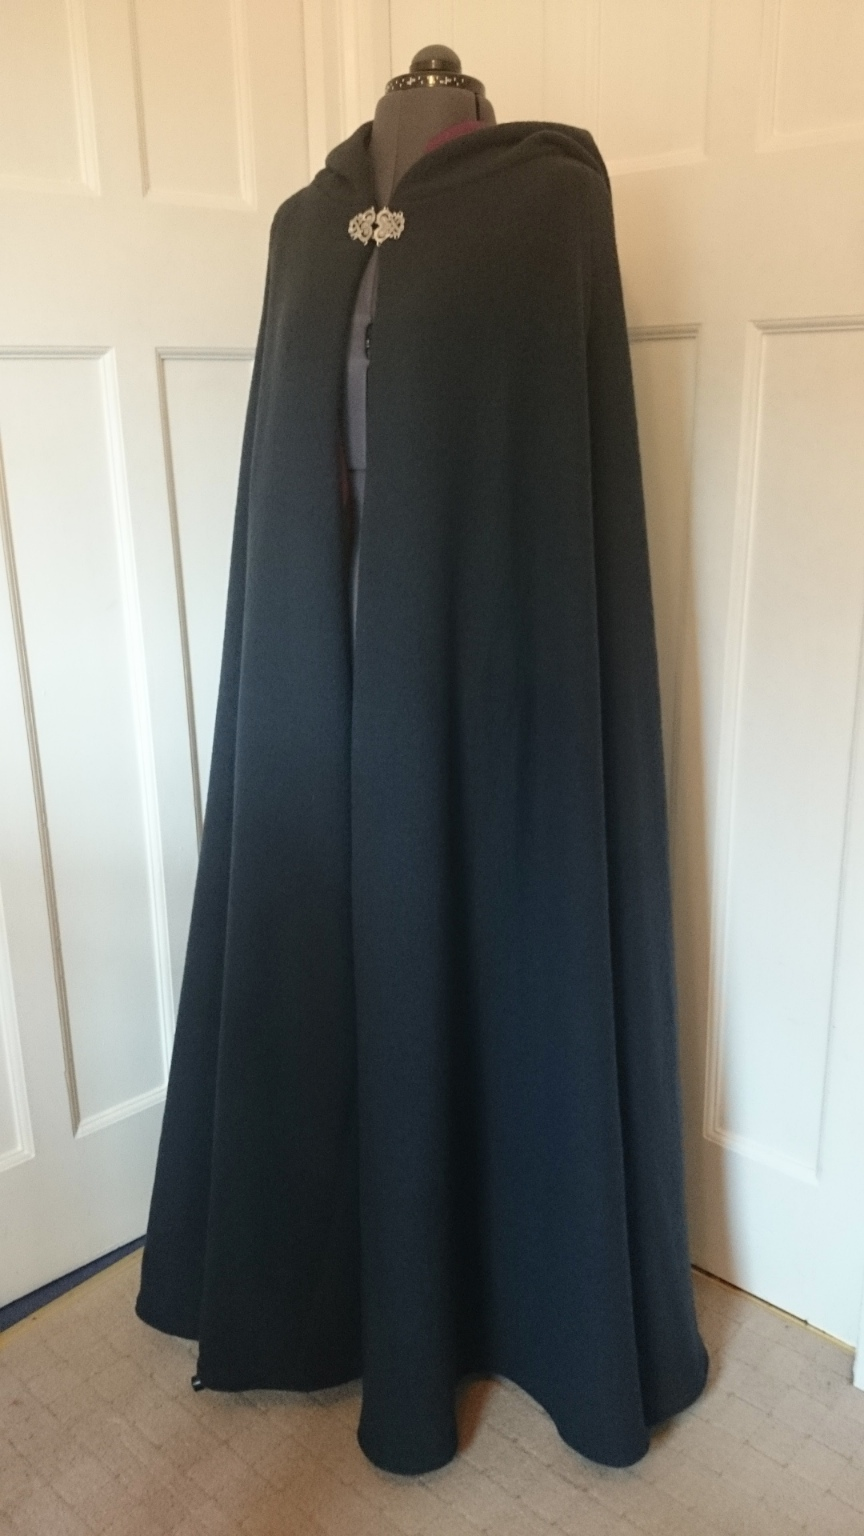 Semi-circular boiled wool cloak with contrasting lining - choice of colours - made to order